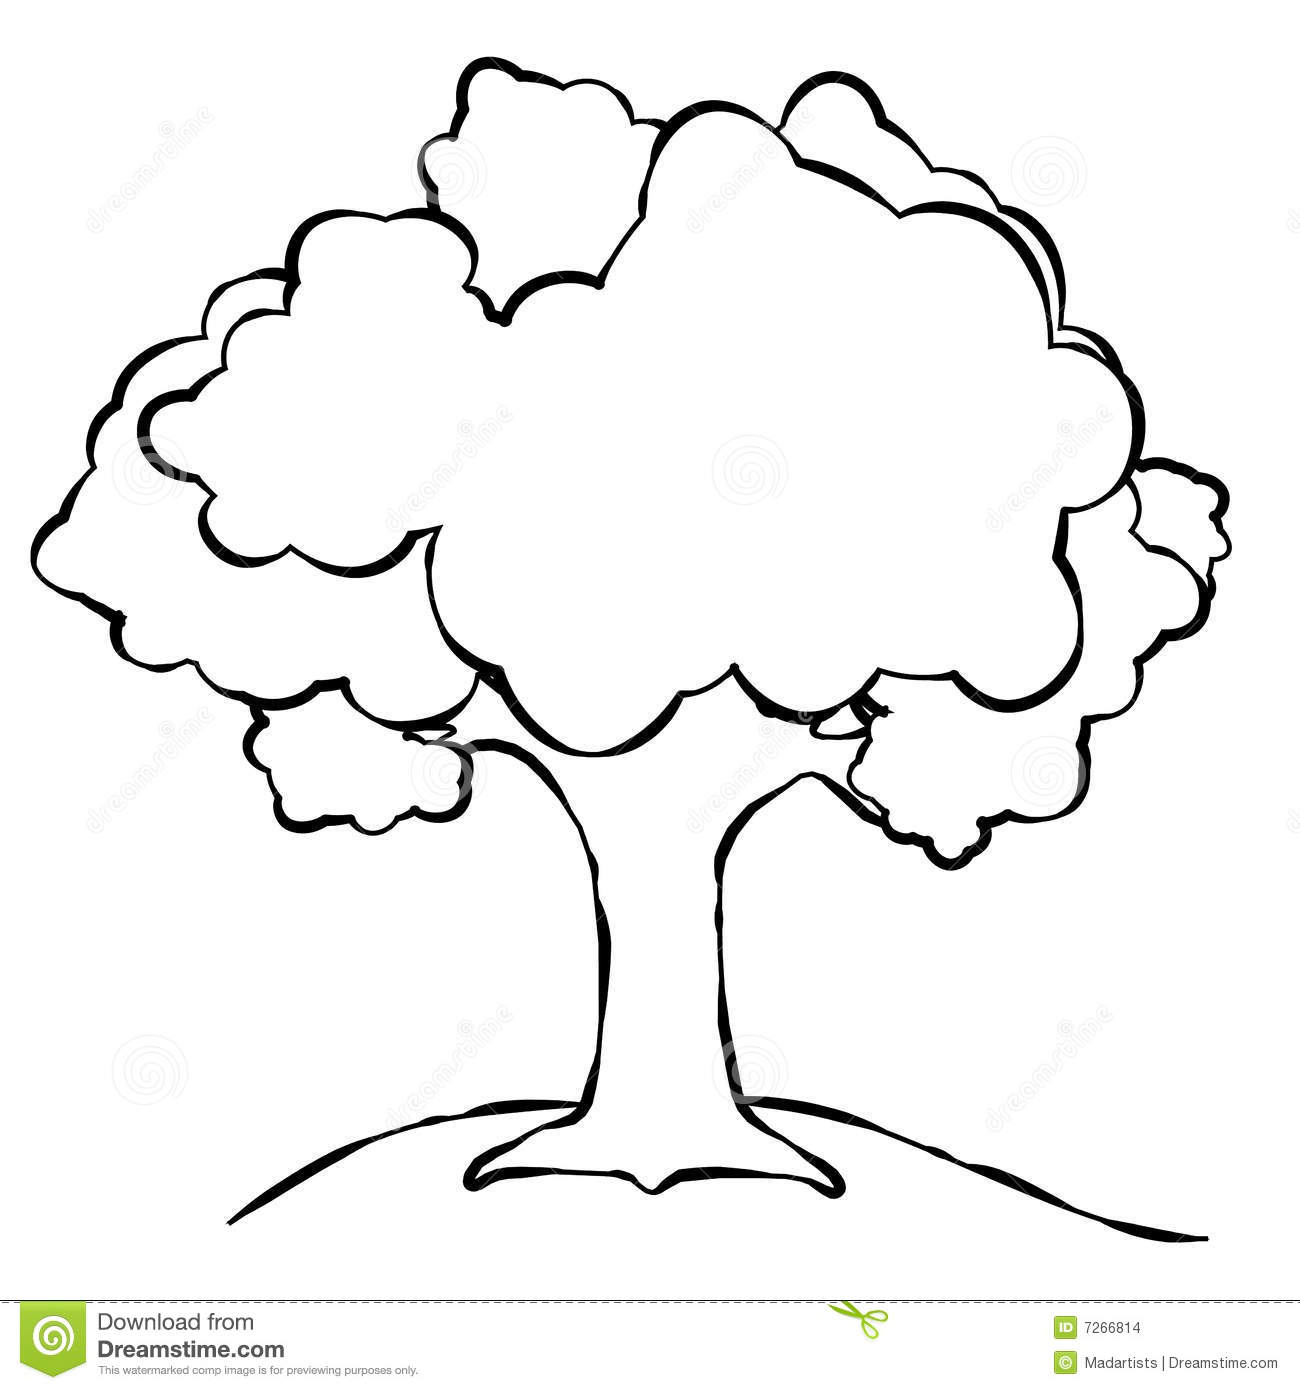 Simple Tree Line Art stock illustration. Illustration of